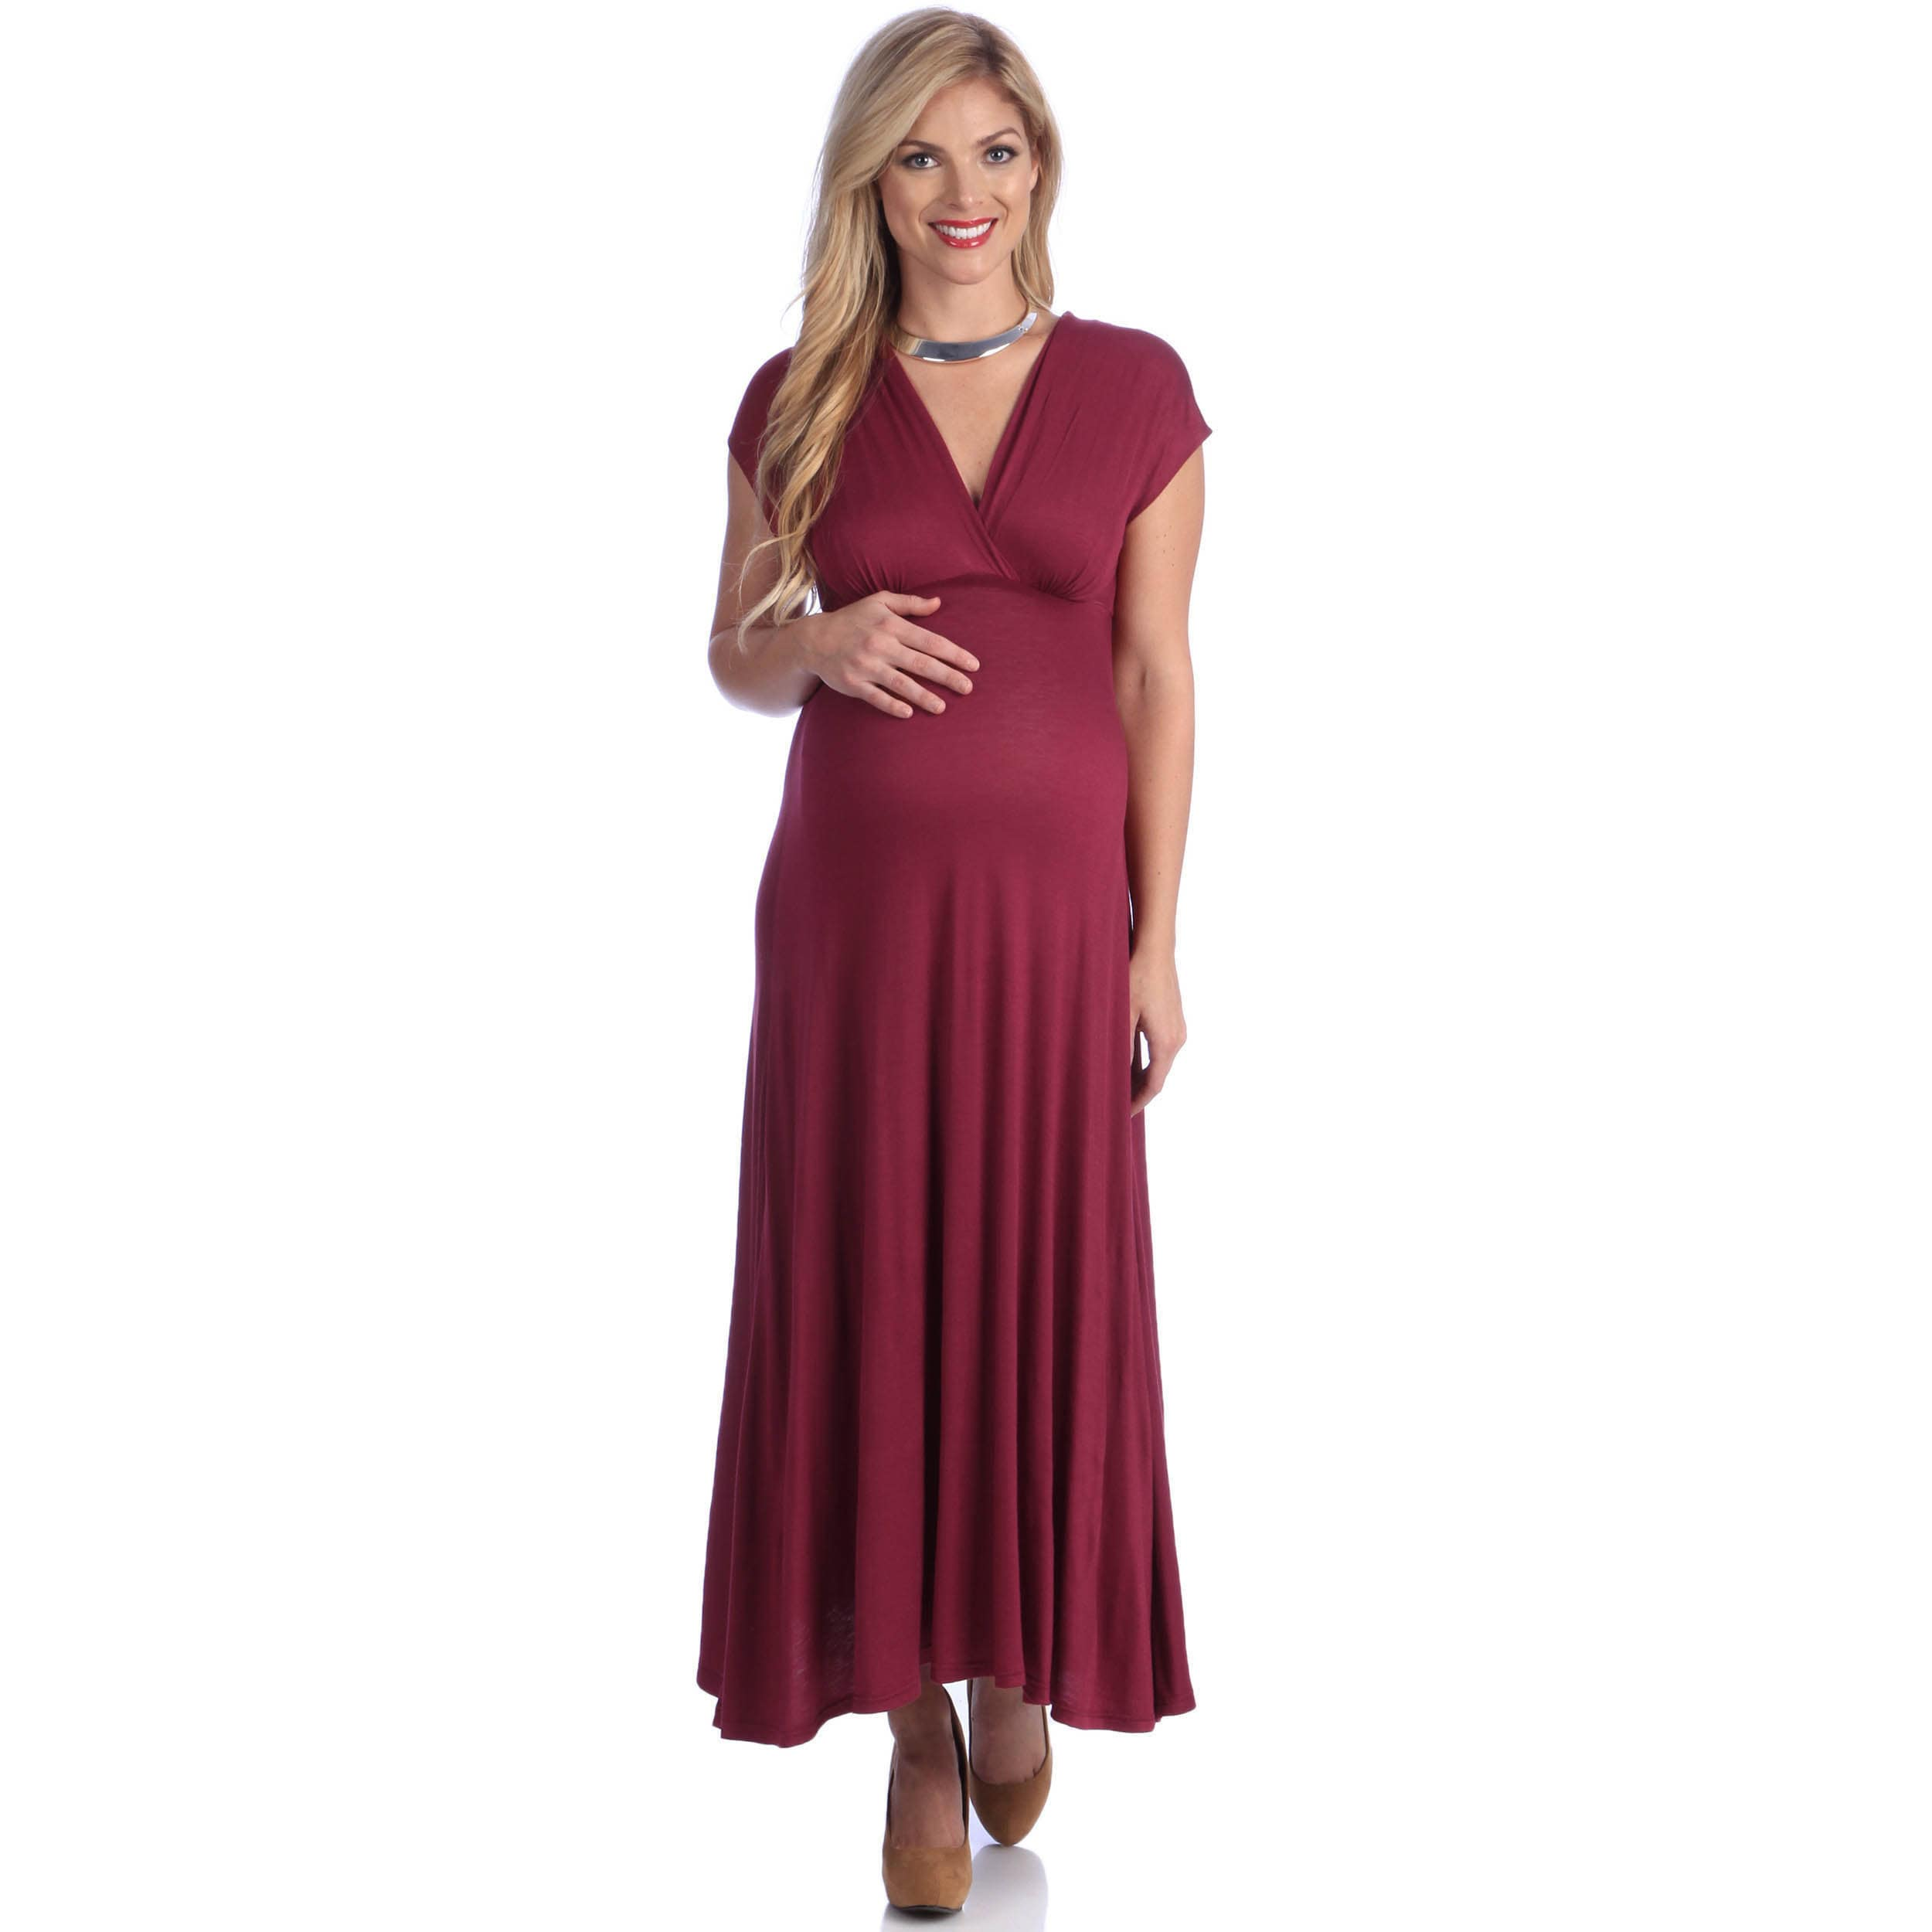 a6d45a18a4d Shop 24 7 Comfort Apparel Women s Maternity Faux Wrap Maxi Dress ...